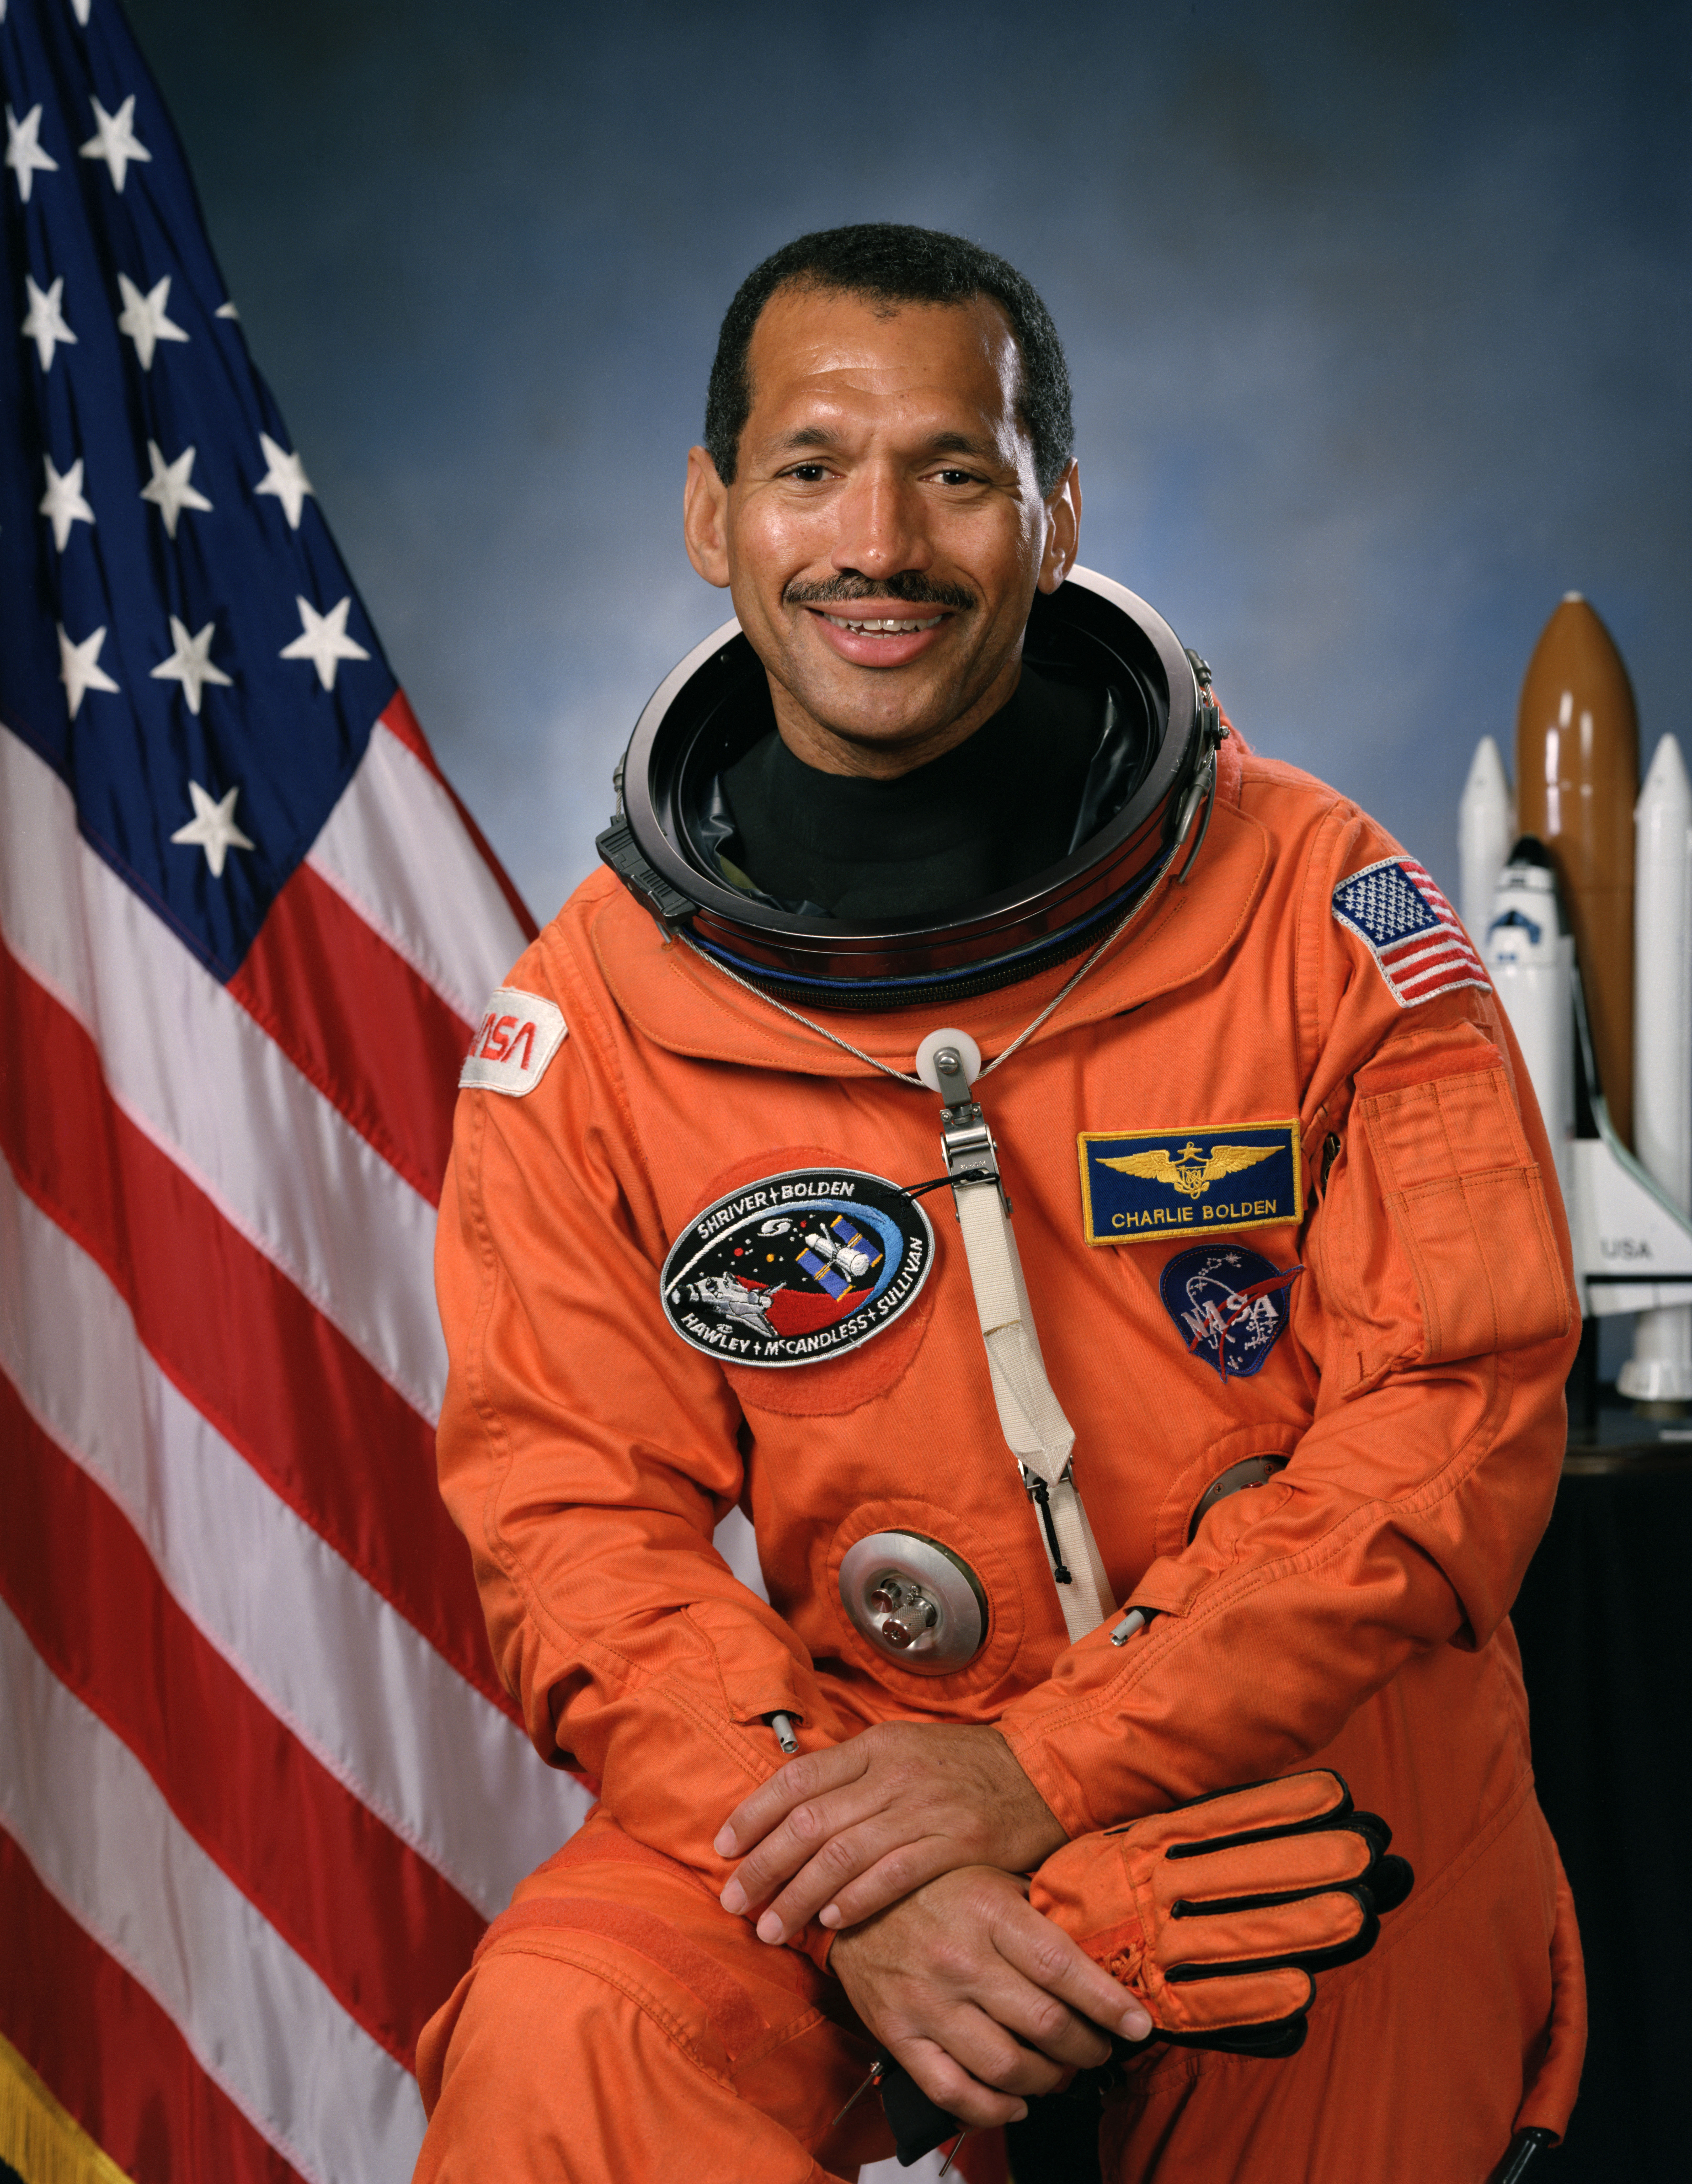 image of Charles Bolden